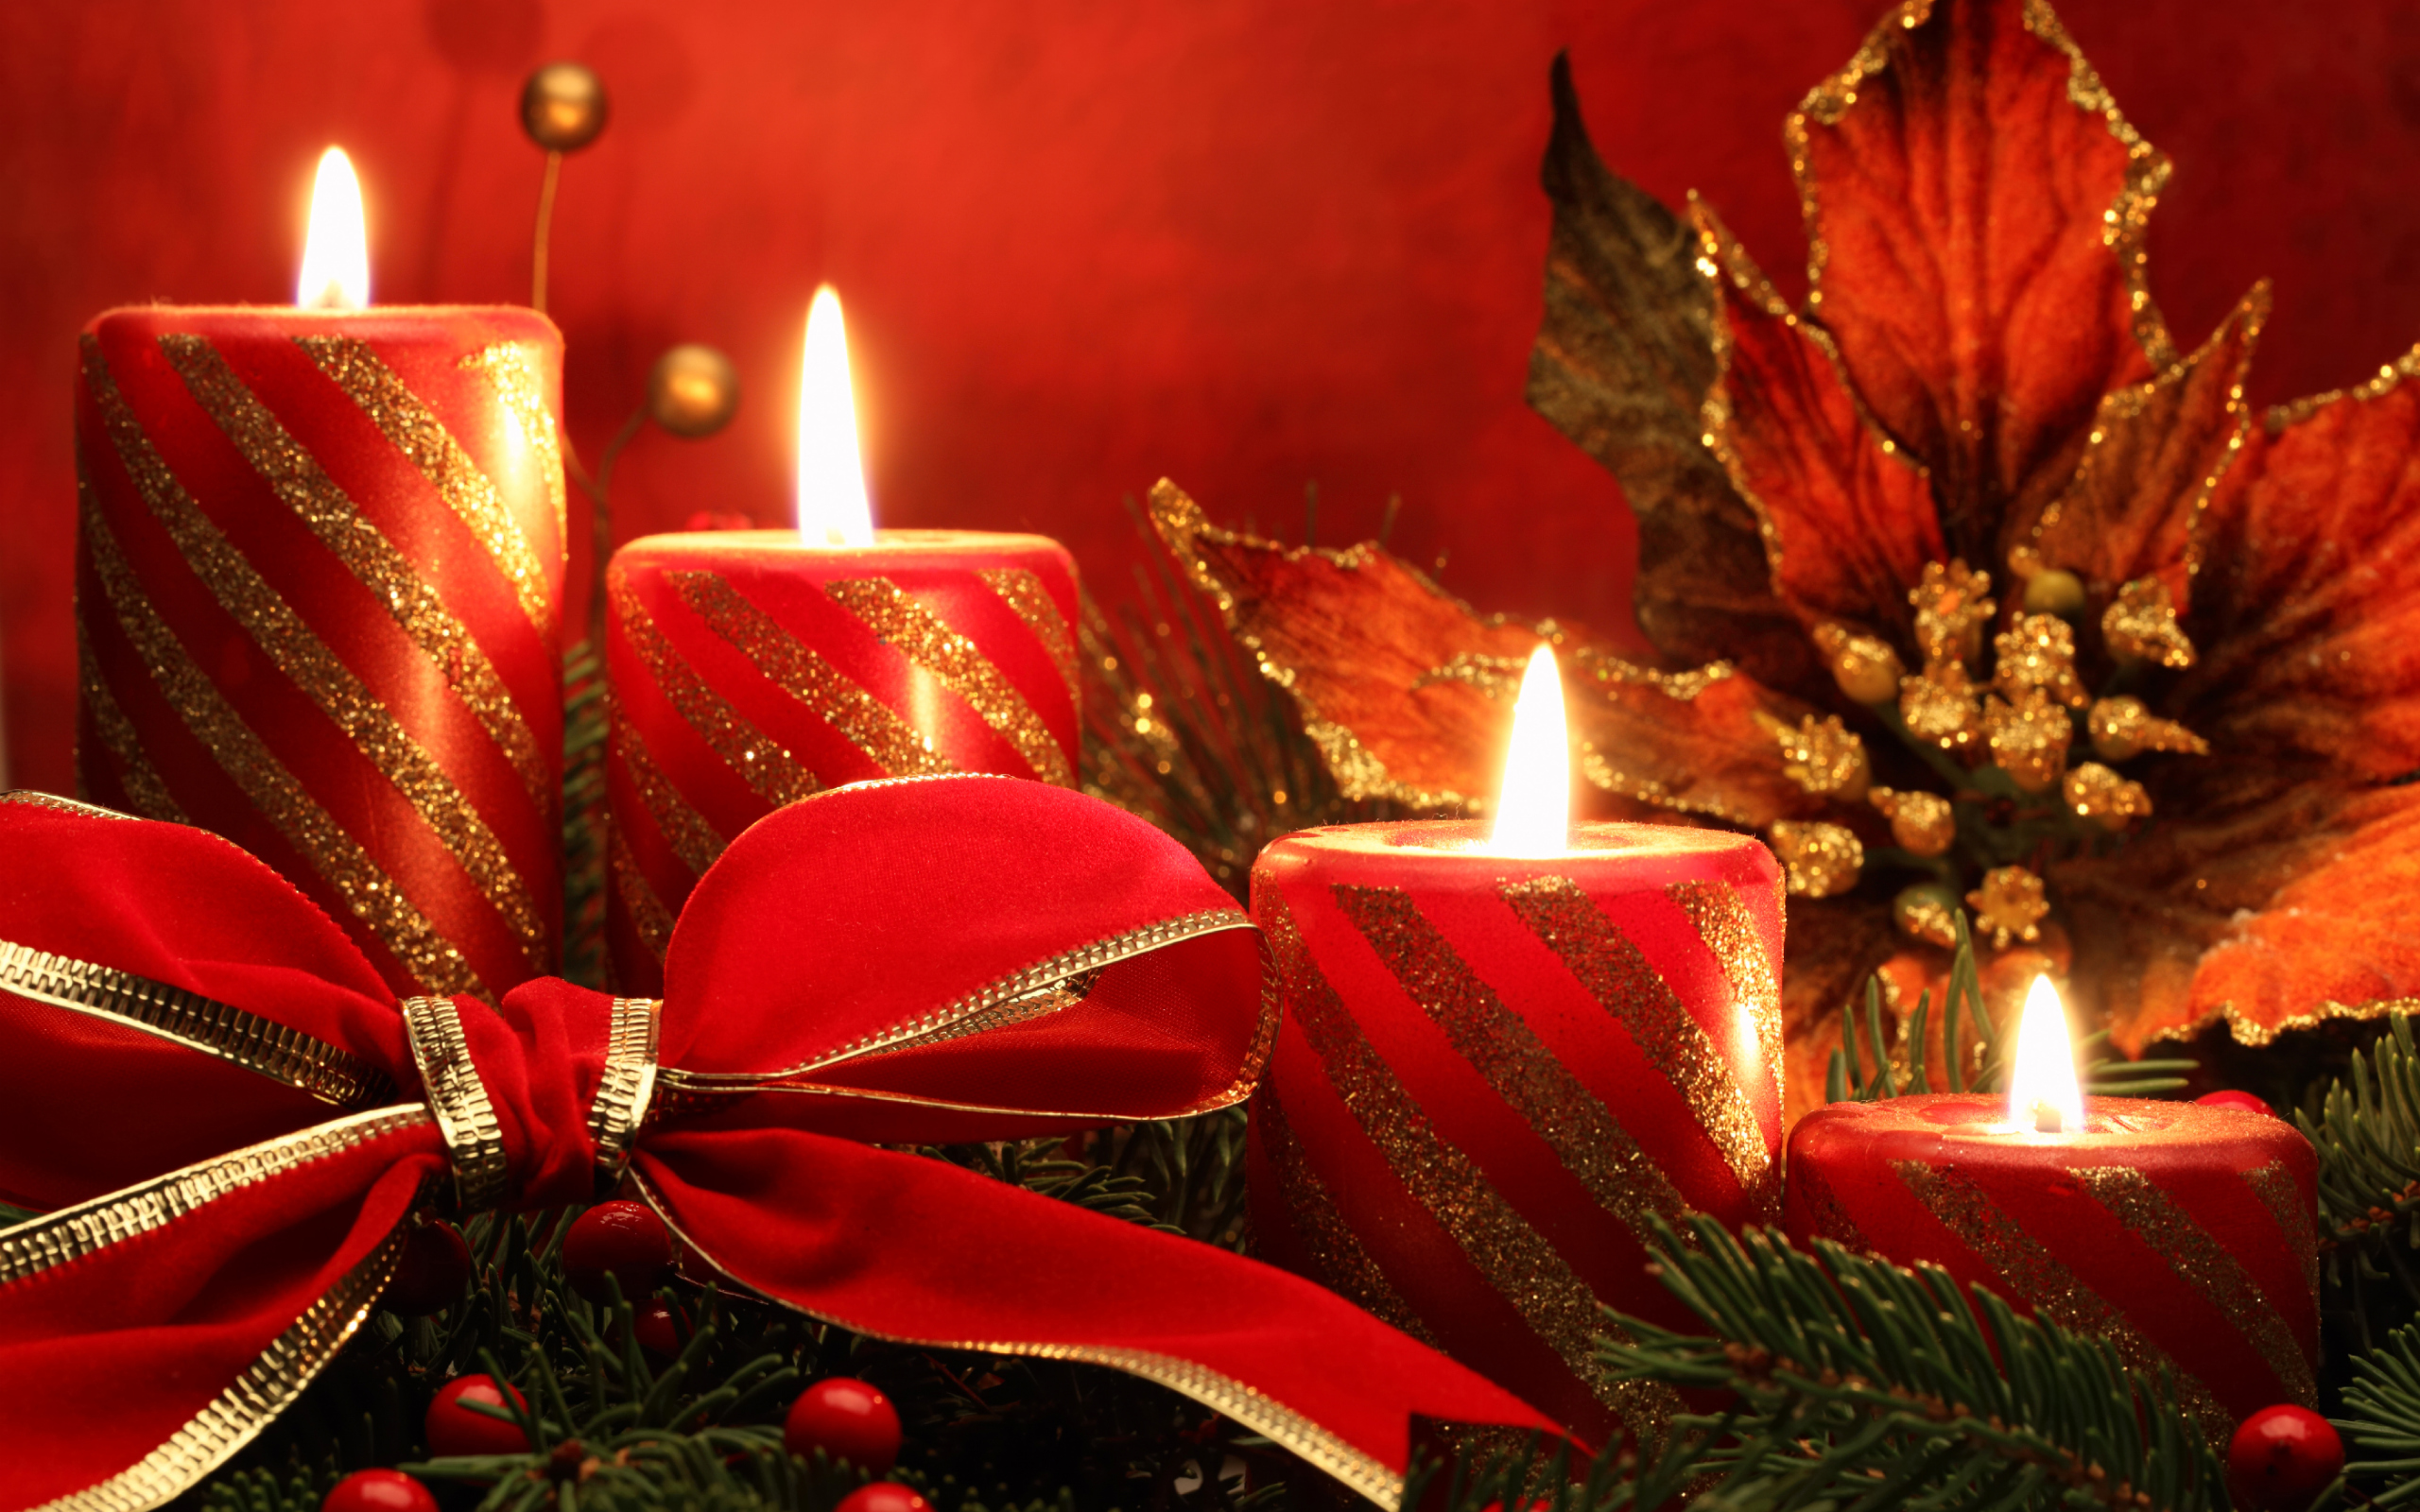 Download Holiday Christmas Wallpaper 2560x1600 Wallpoper 2560x1600